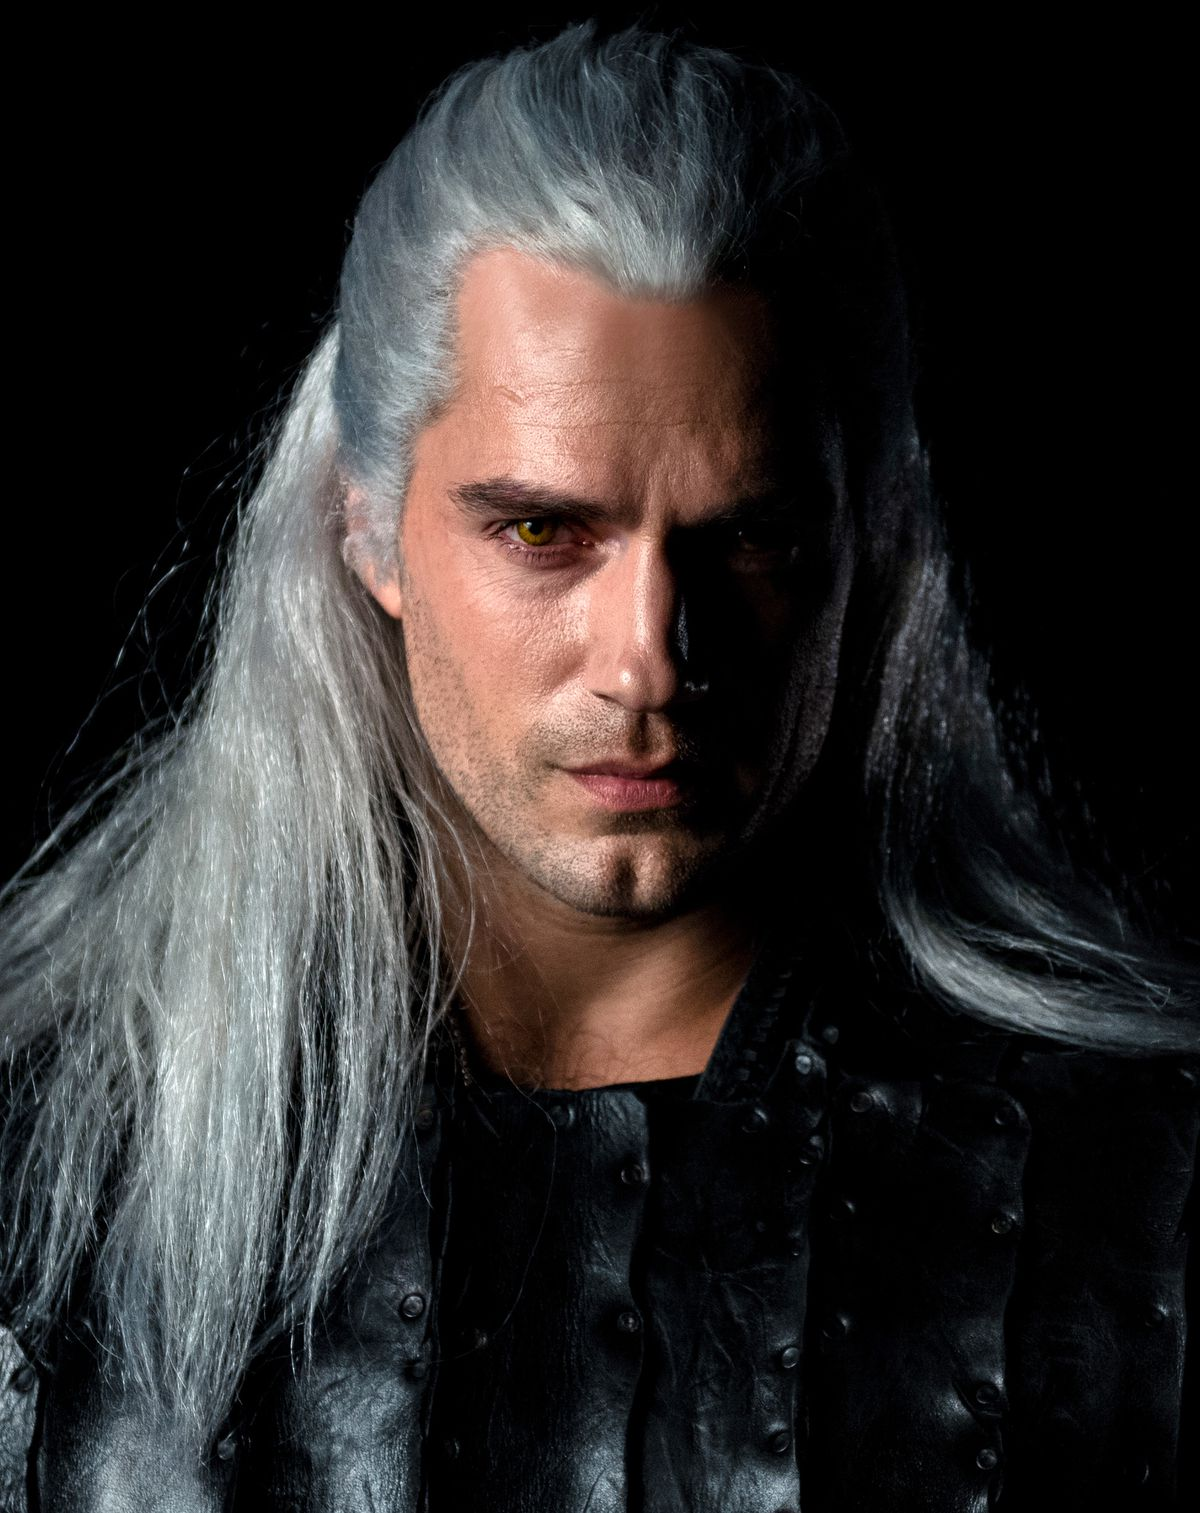 Henry Cavill as Geralt in Netflix's The Witcher